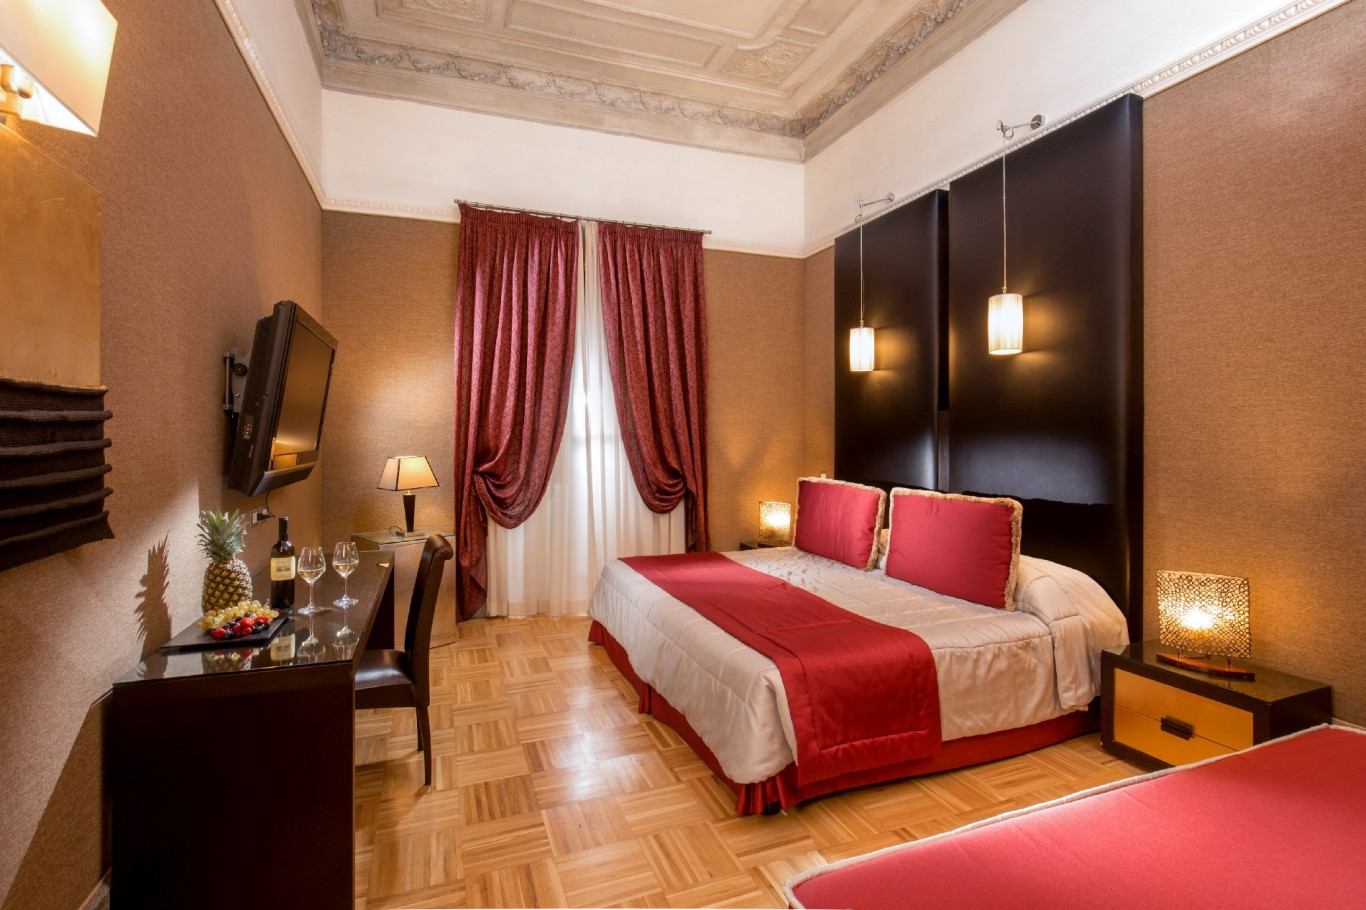 Hotel-Morgana-Rome-luxury-room-